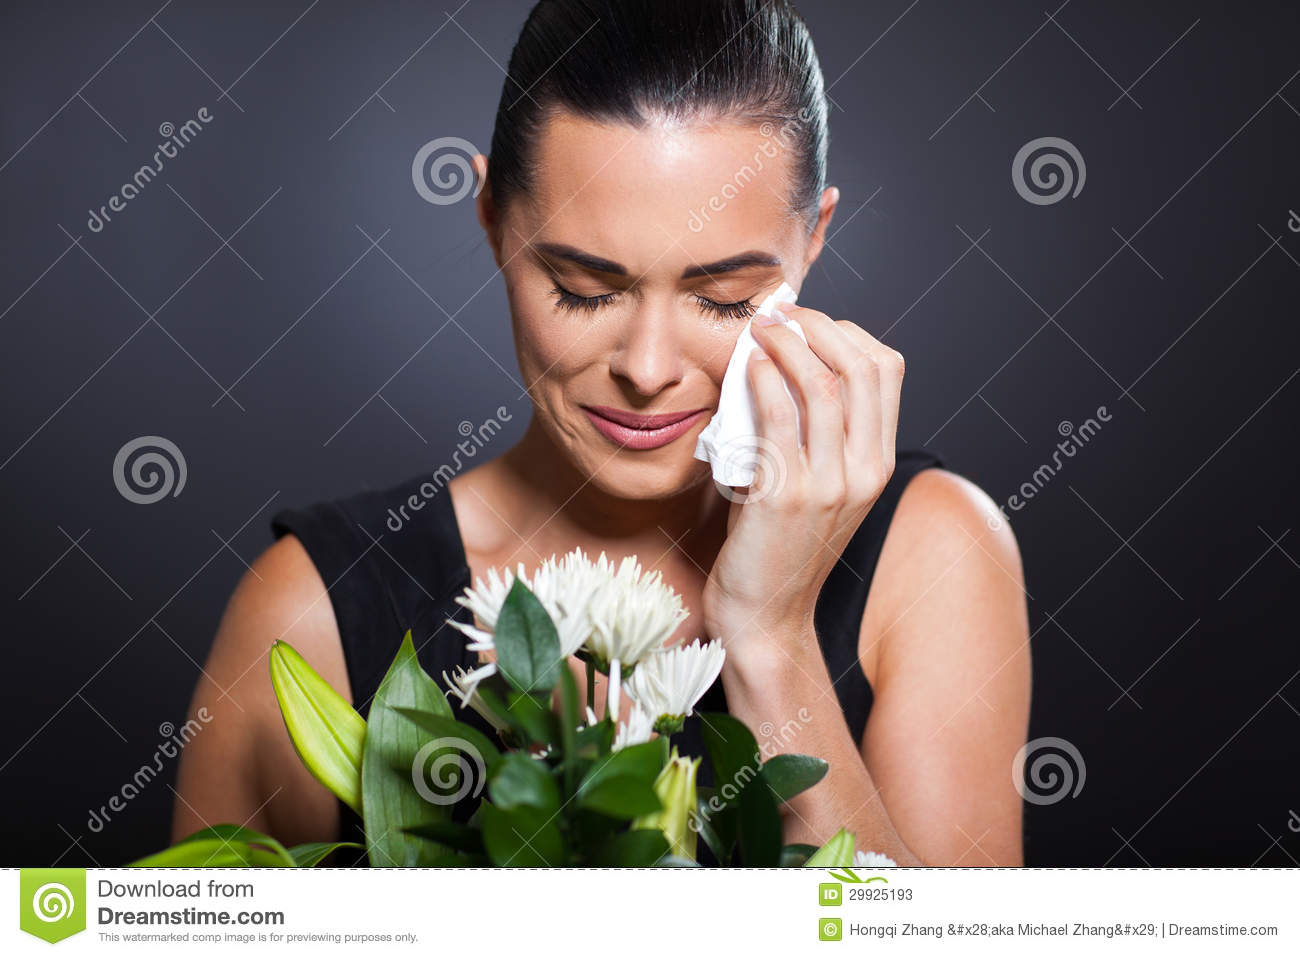 Crying Woman Funeral Stock Photos - Image: 29925193